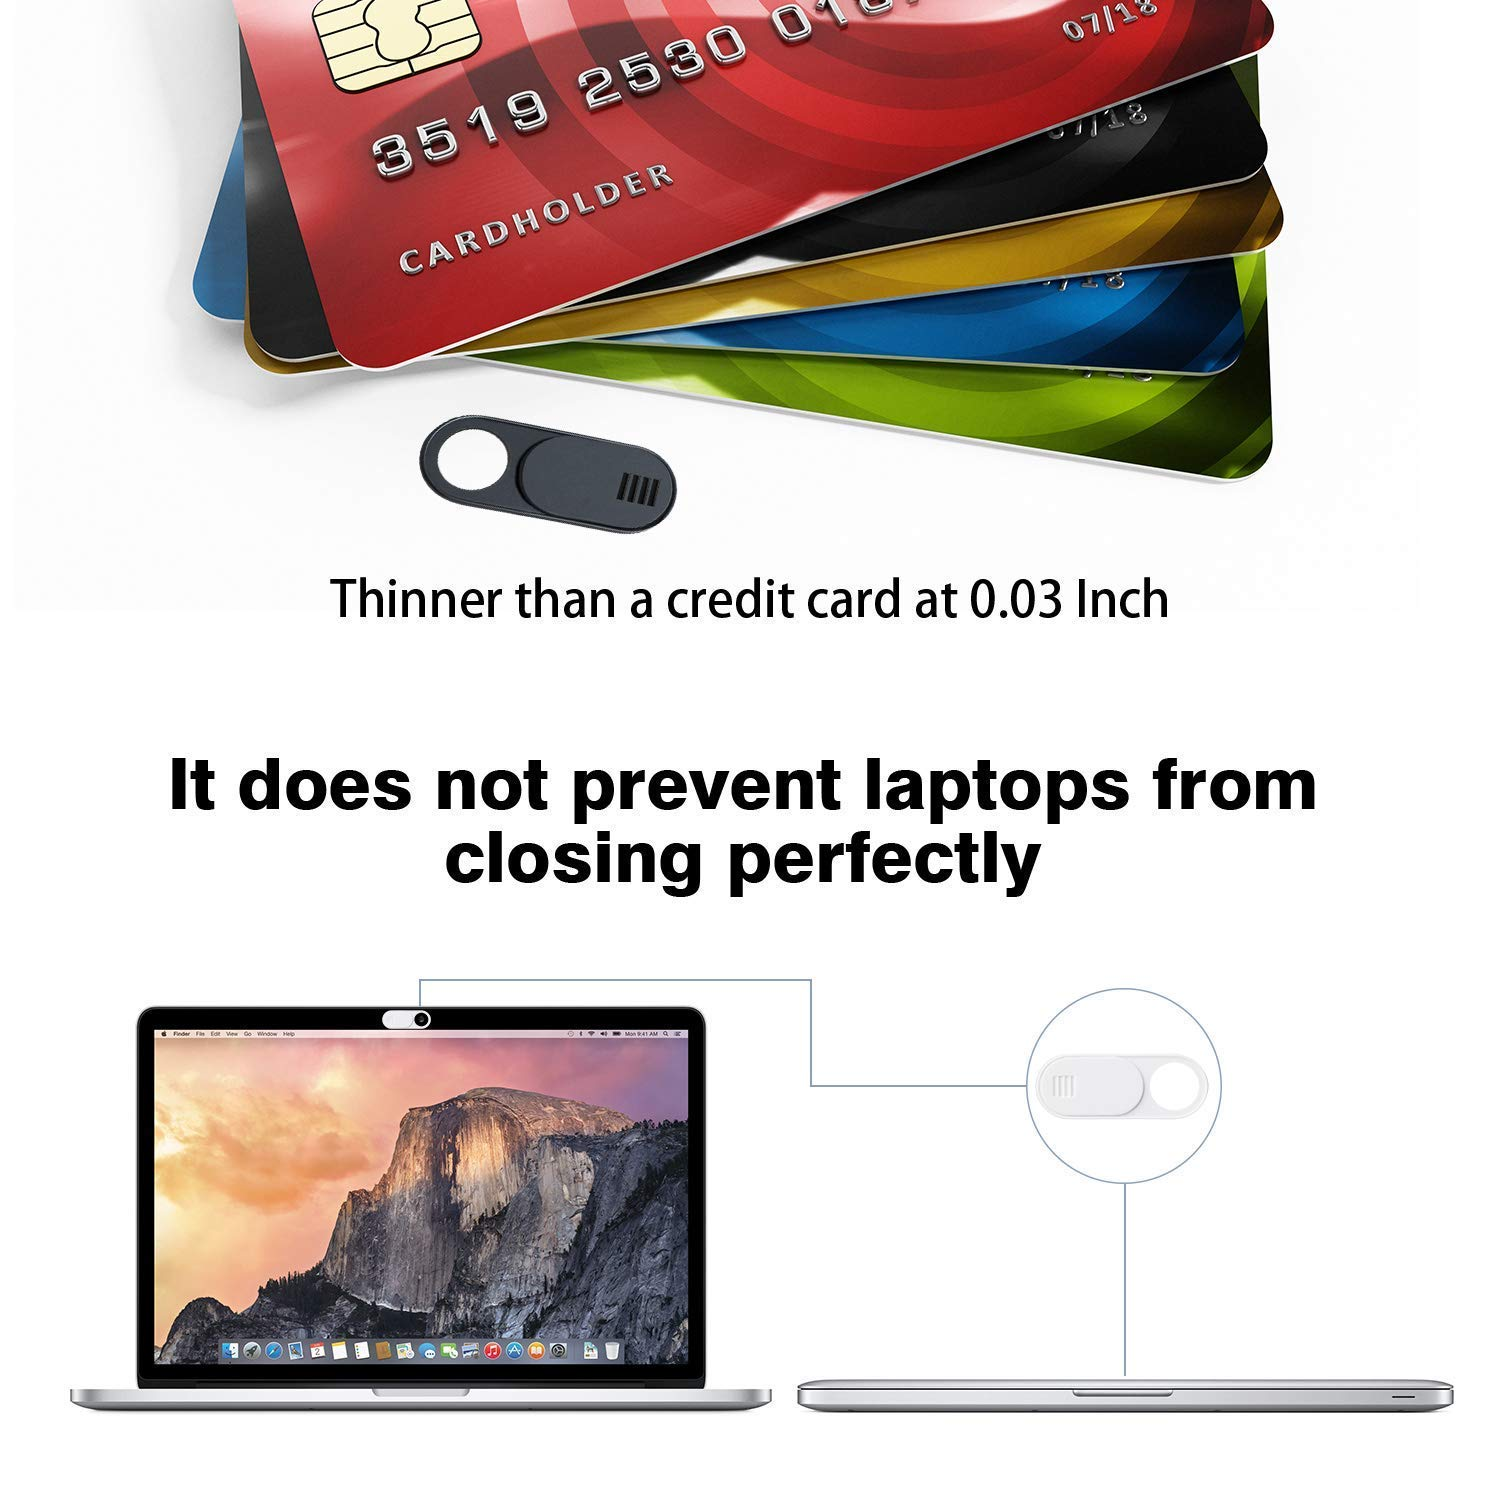 Ultra Thin Metal Magnet Laptop Camera Cover Slide Blocker for Computer MacBook Pro iMac PC Tablet Notebook Surface Pro Echo Show Camera Protecting Your Privacy Security Webcam Cover Slide